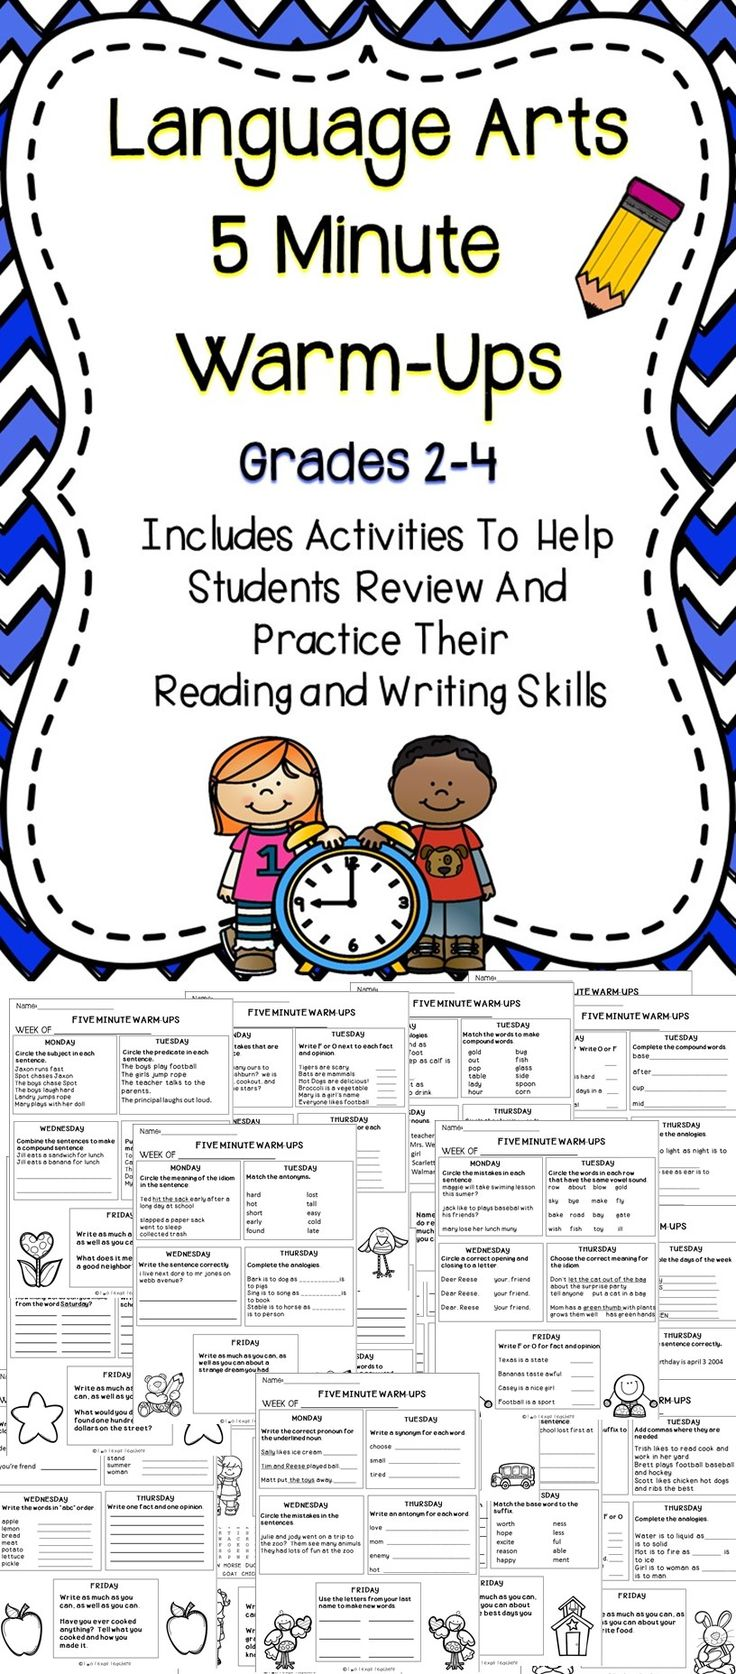 Five Minute Warm-Up For Language Arts - This is a great bundle of language arts warm-ups to hep students review their ELA skills throughout the year.  #education